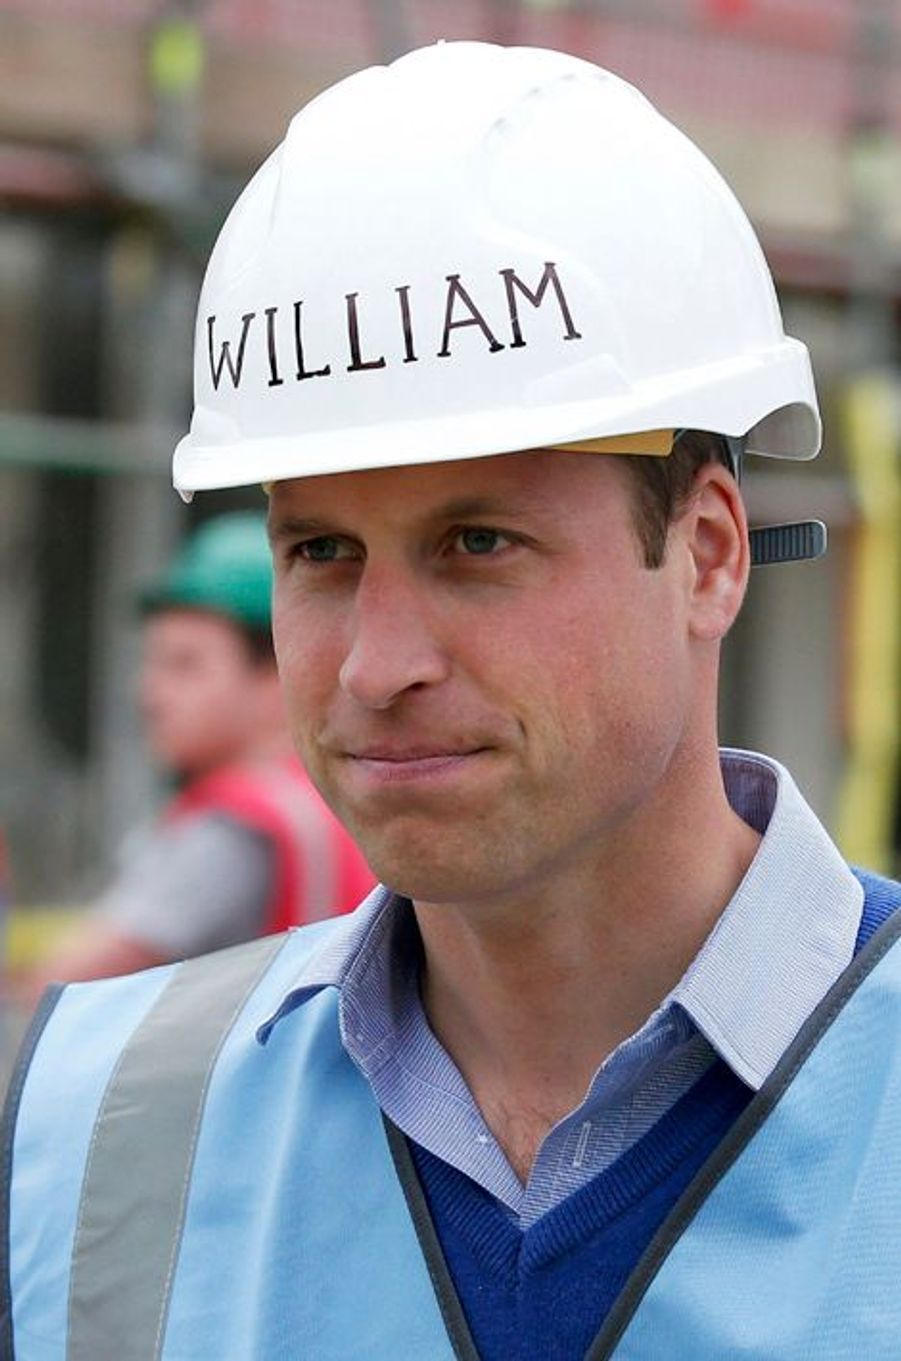 Le prince William à Manchester, le 23 septembre 2015